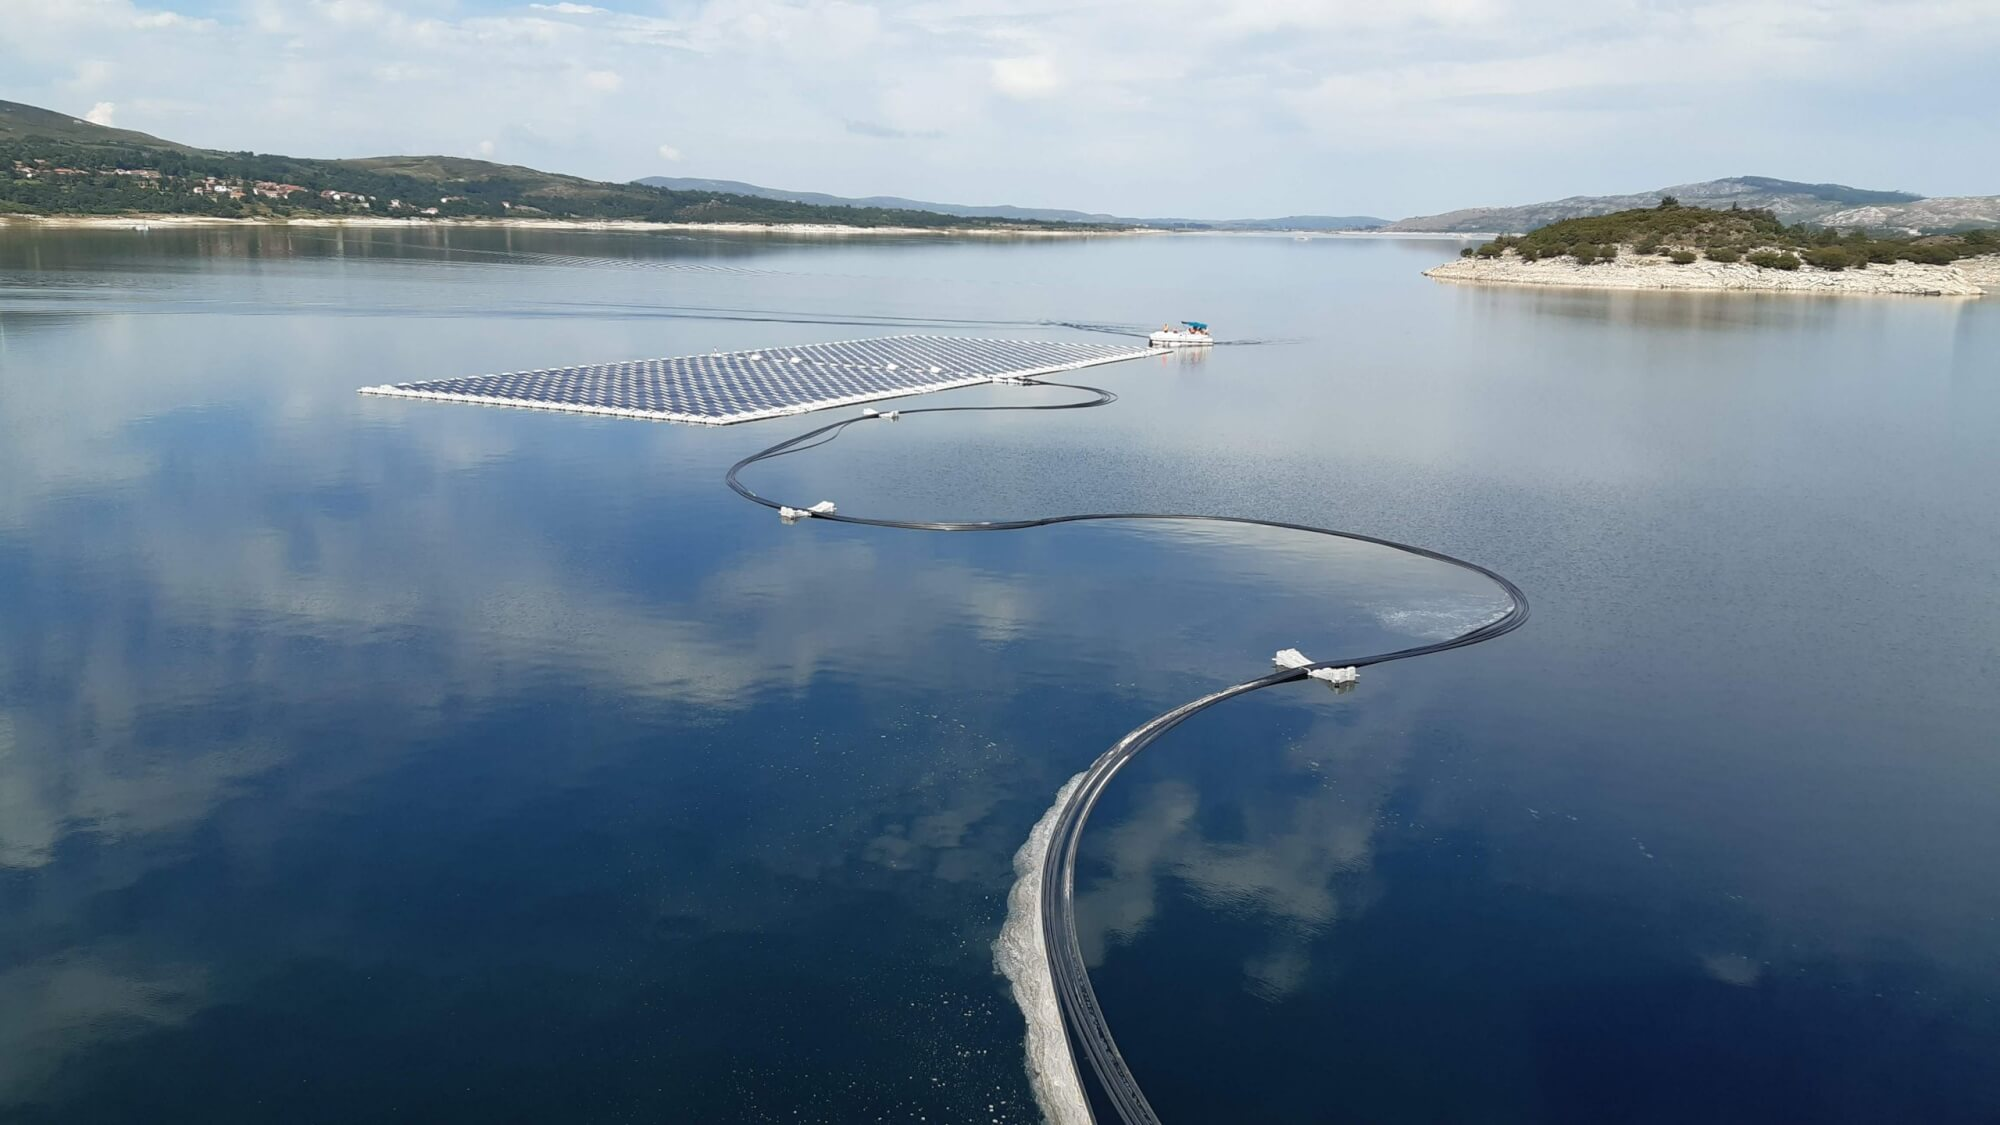 Floating photovoltaic solar power plant at the Rabagão river basin, in Montalegre.